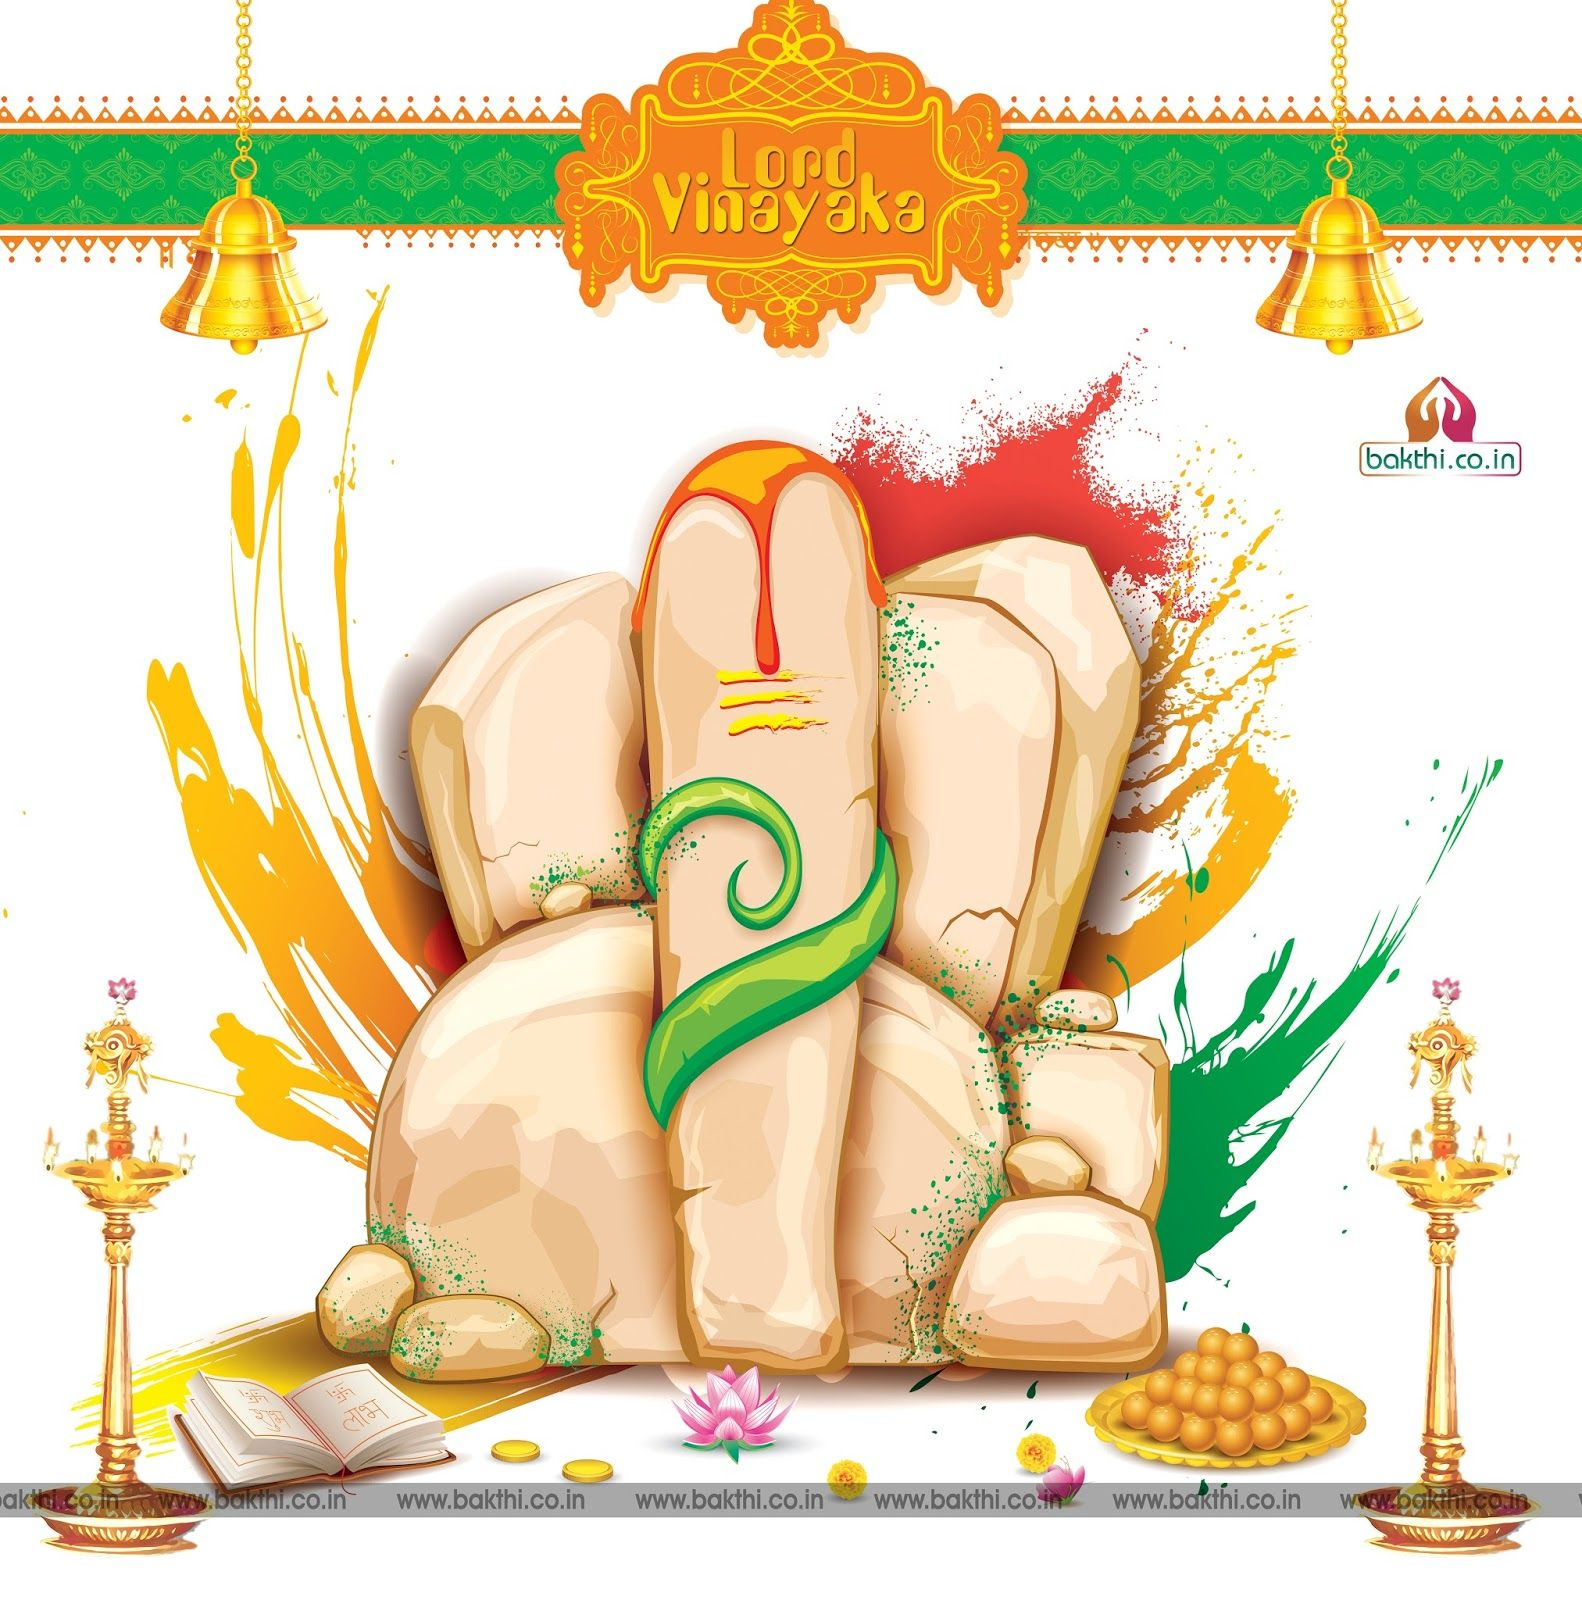 lord ganesha hd images free downloads for facebook